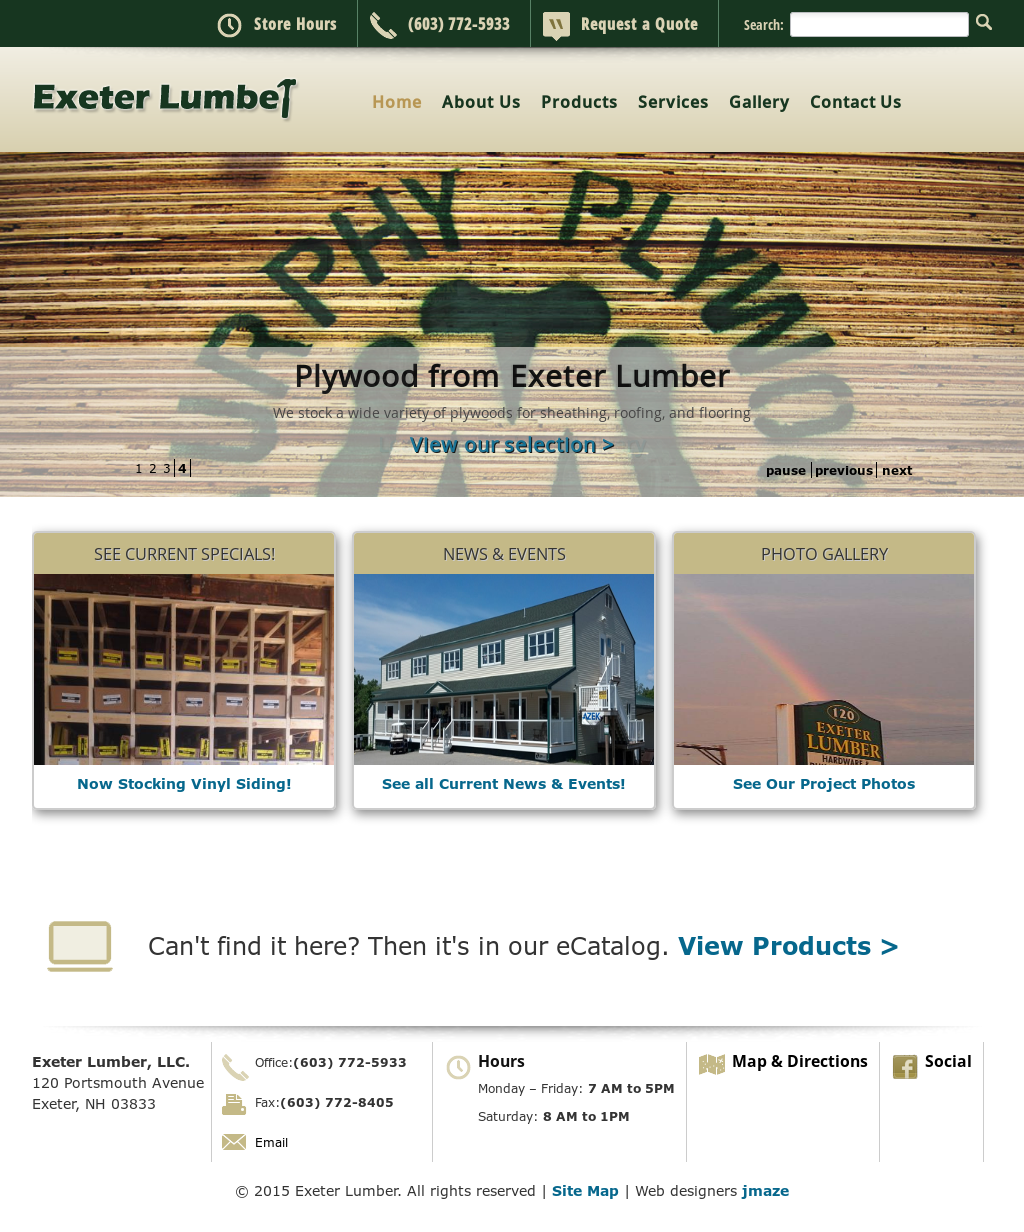 online transactin for kent lumber website Located in kent, oh, carter lumber co is in the structural wood members mfg business operating for 10 or more years, they have an annual income of $10 to 50 million carter lumber co is considered a small business with 50,000 or more square footage of space.